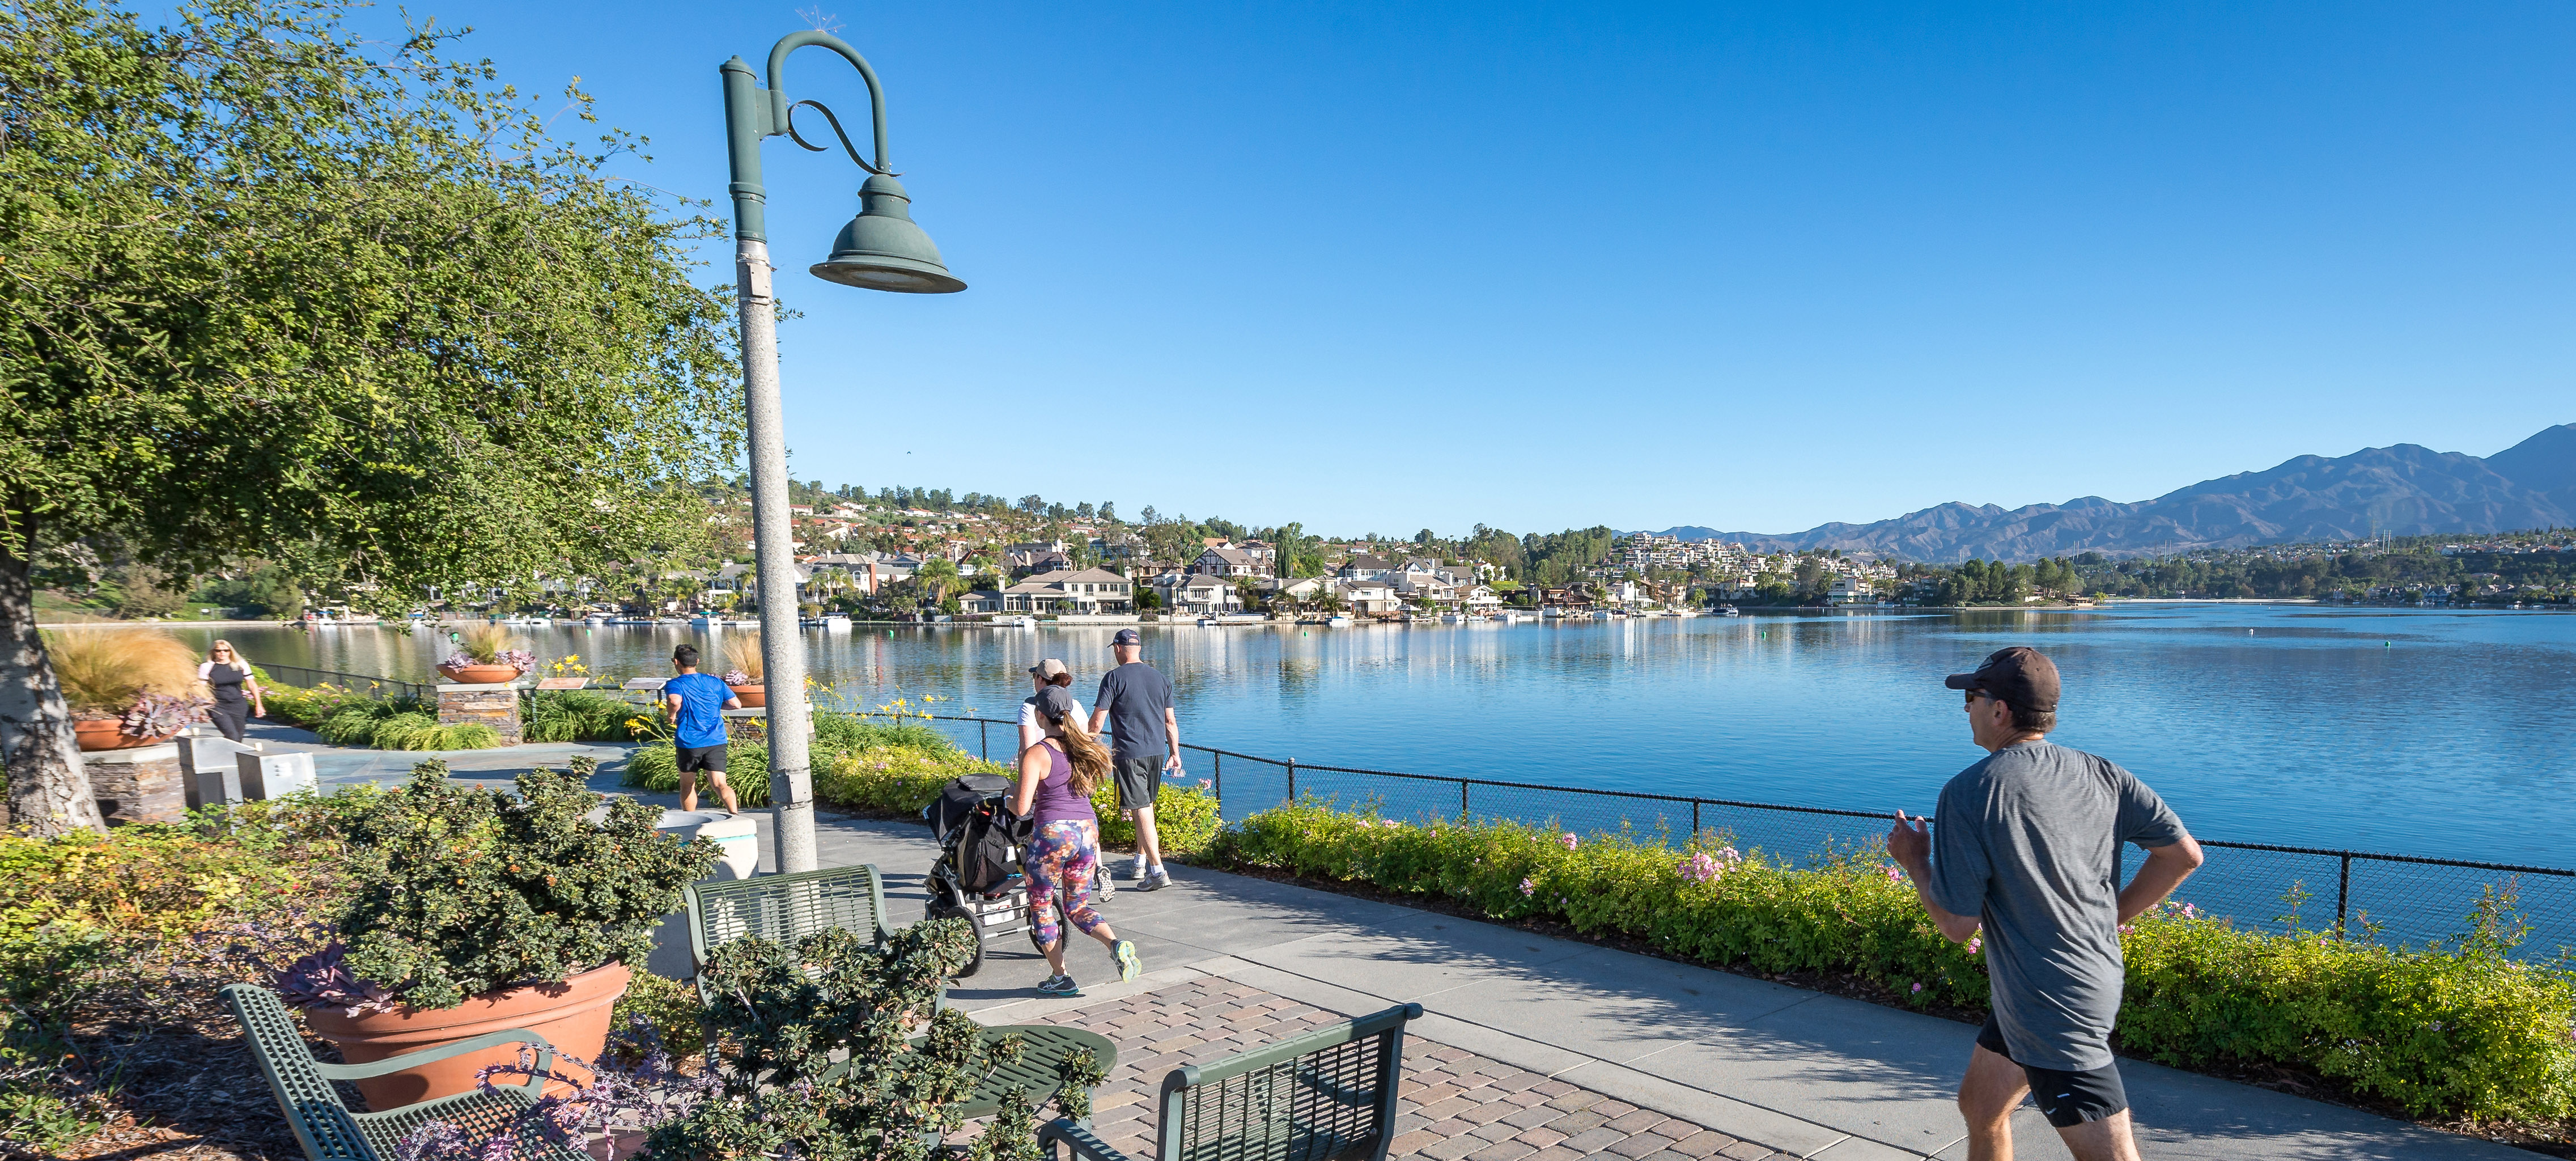 If you have pets and have an active lifestyle you'll love Mission Viejo.